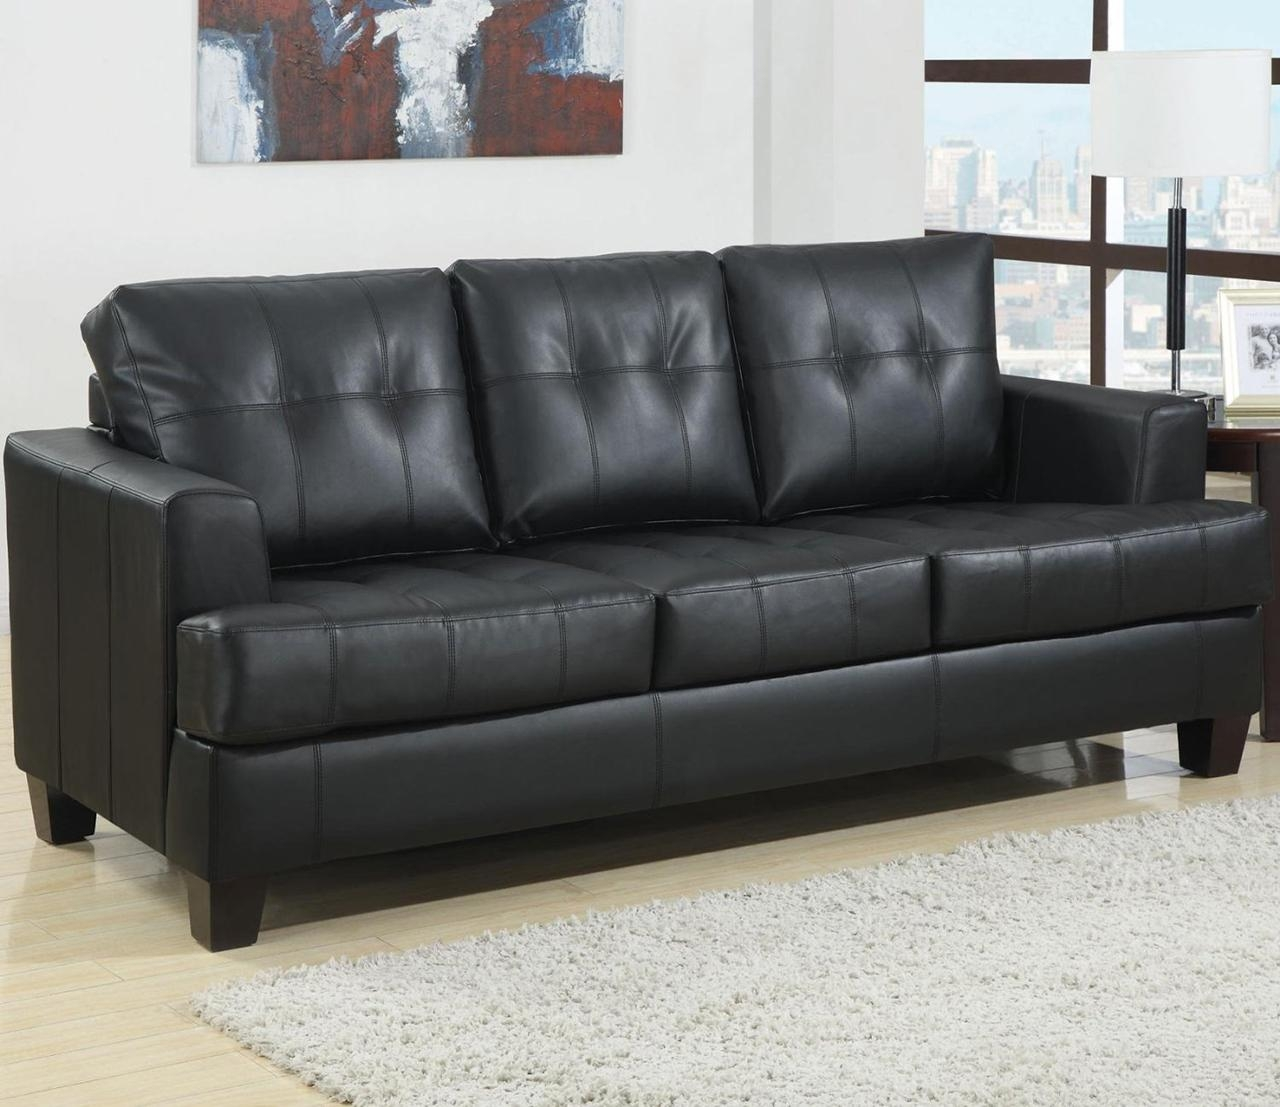 Black Leather Sleeper Sofa Queen – Ansugallery Intended For Black Leather Sectional Sleeper Sofas (View 4 of 21)